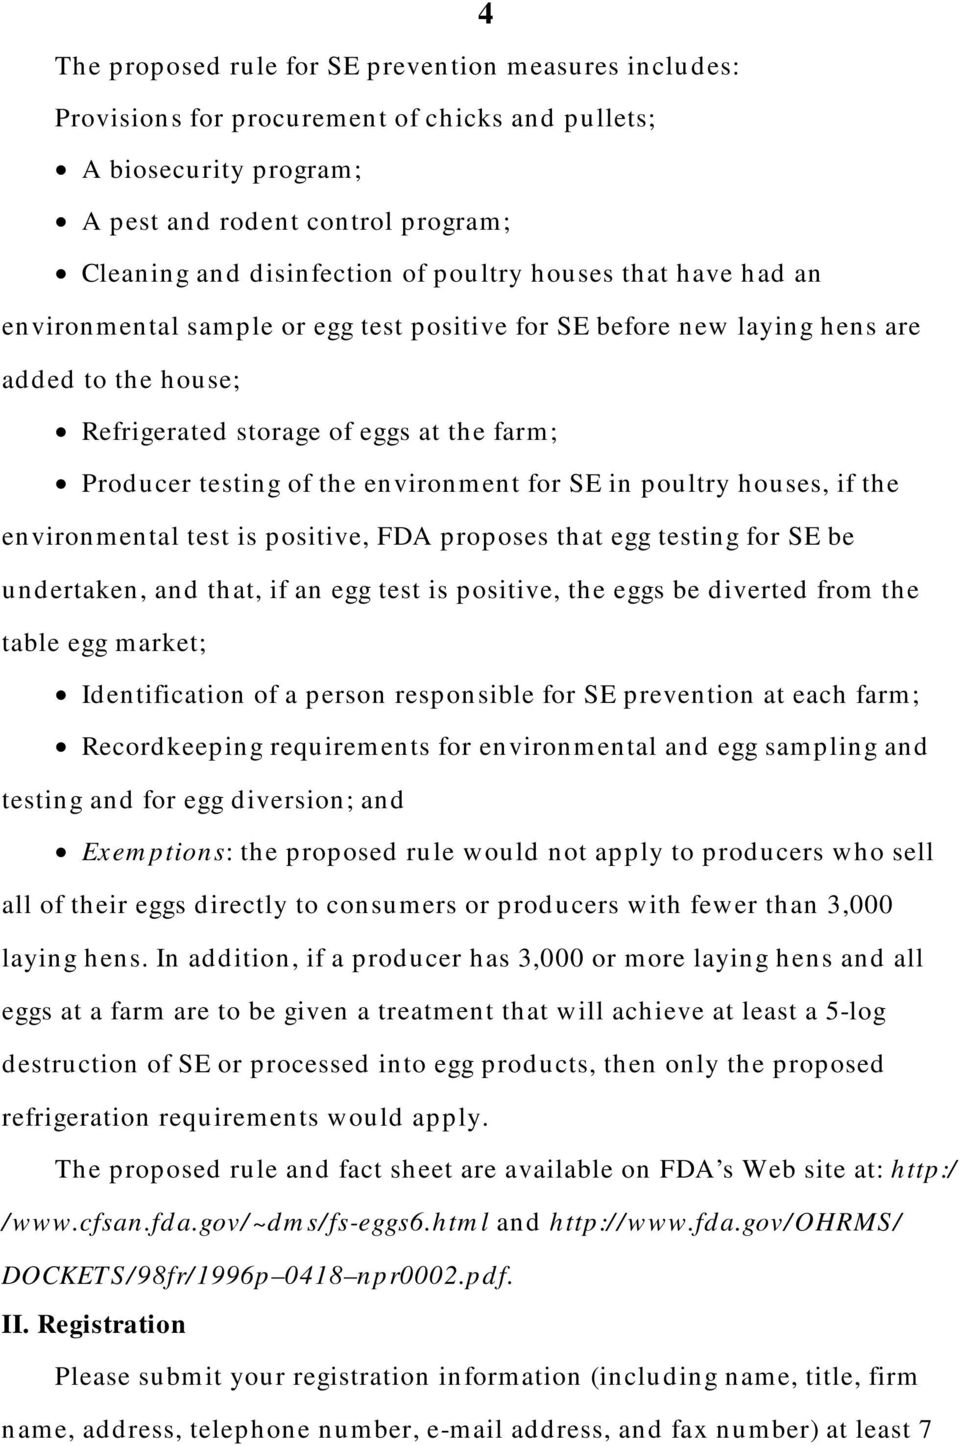 environment for SE in poultry houses, if the environmental test is positive, FDA proposes that egg testing for SE be undertaken, and that, if an egg test is positive, the eggs be diverted from the